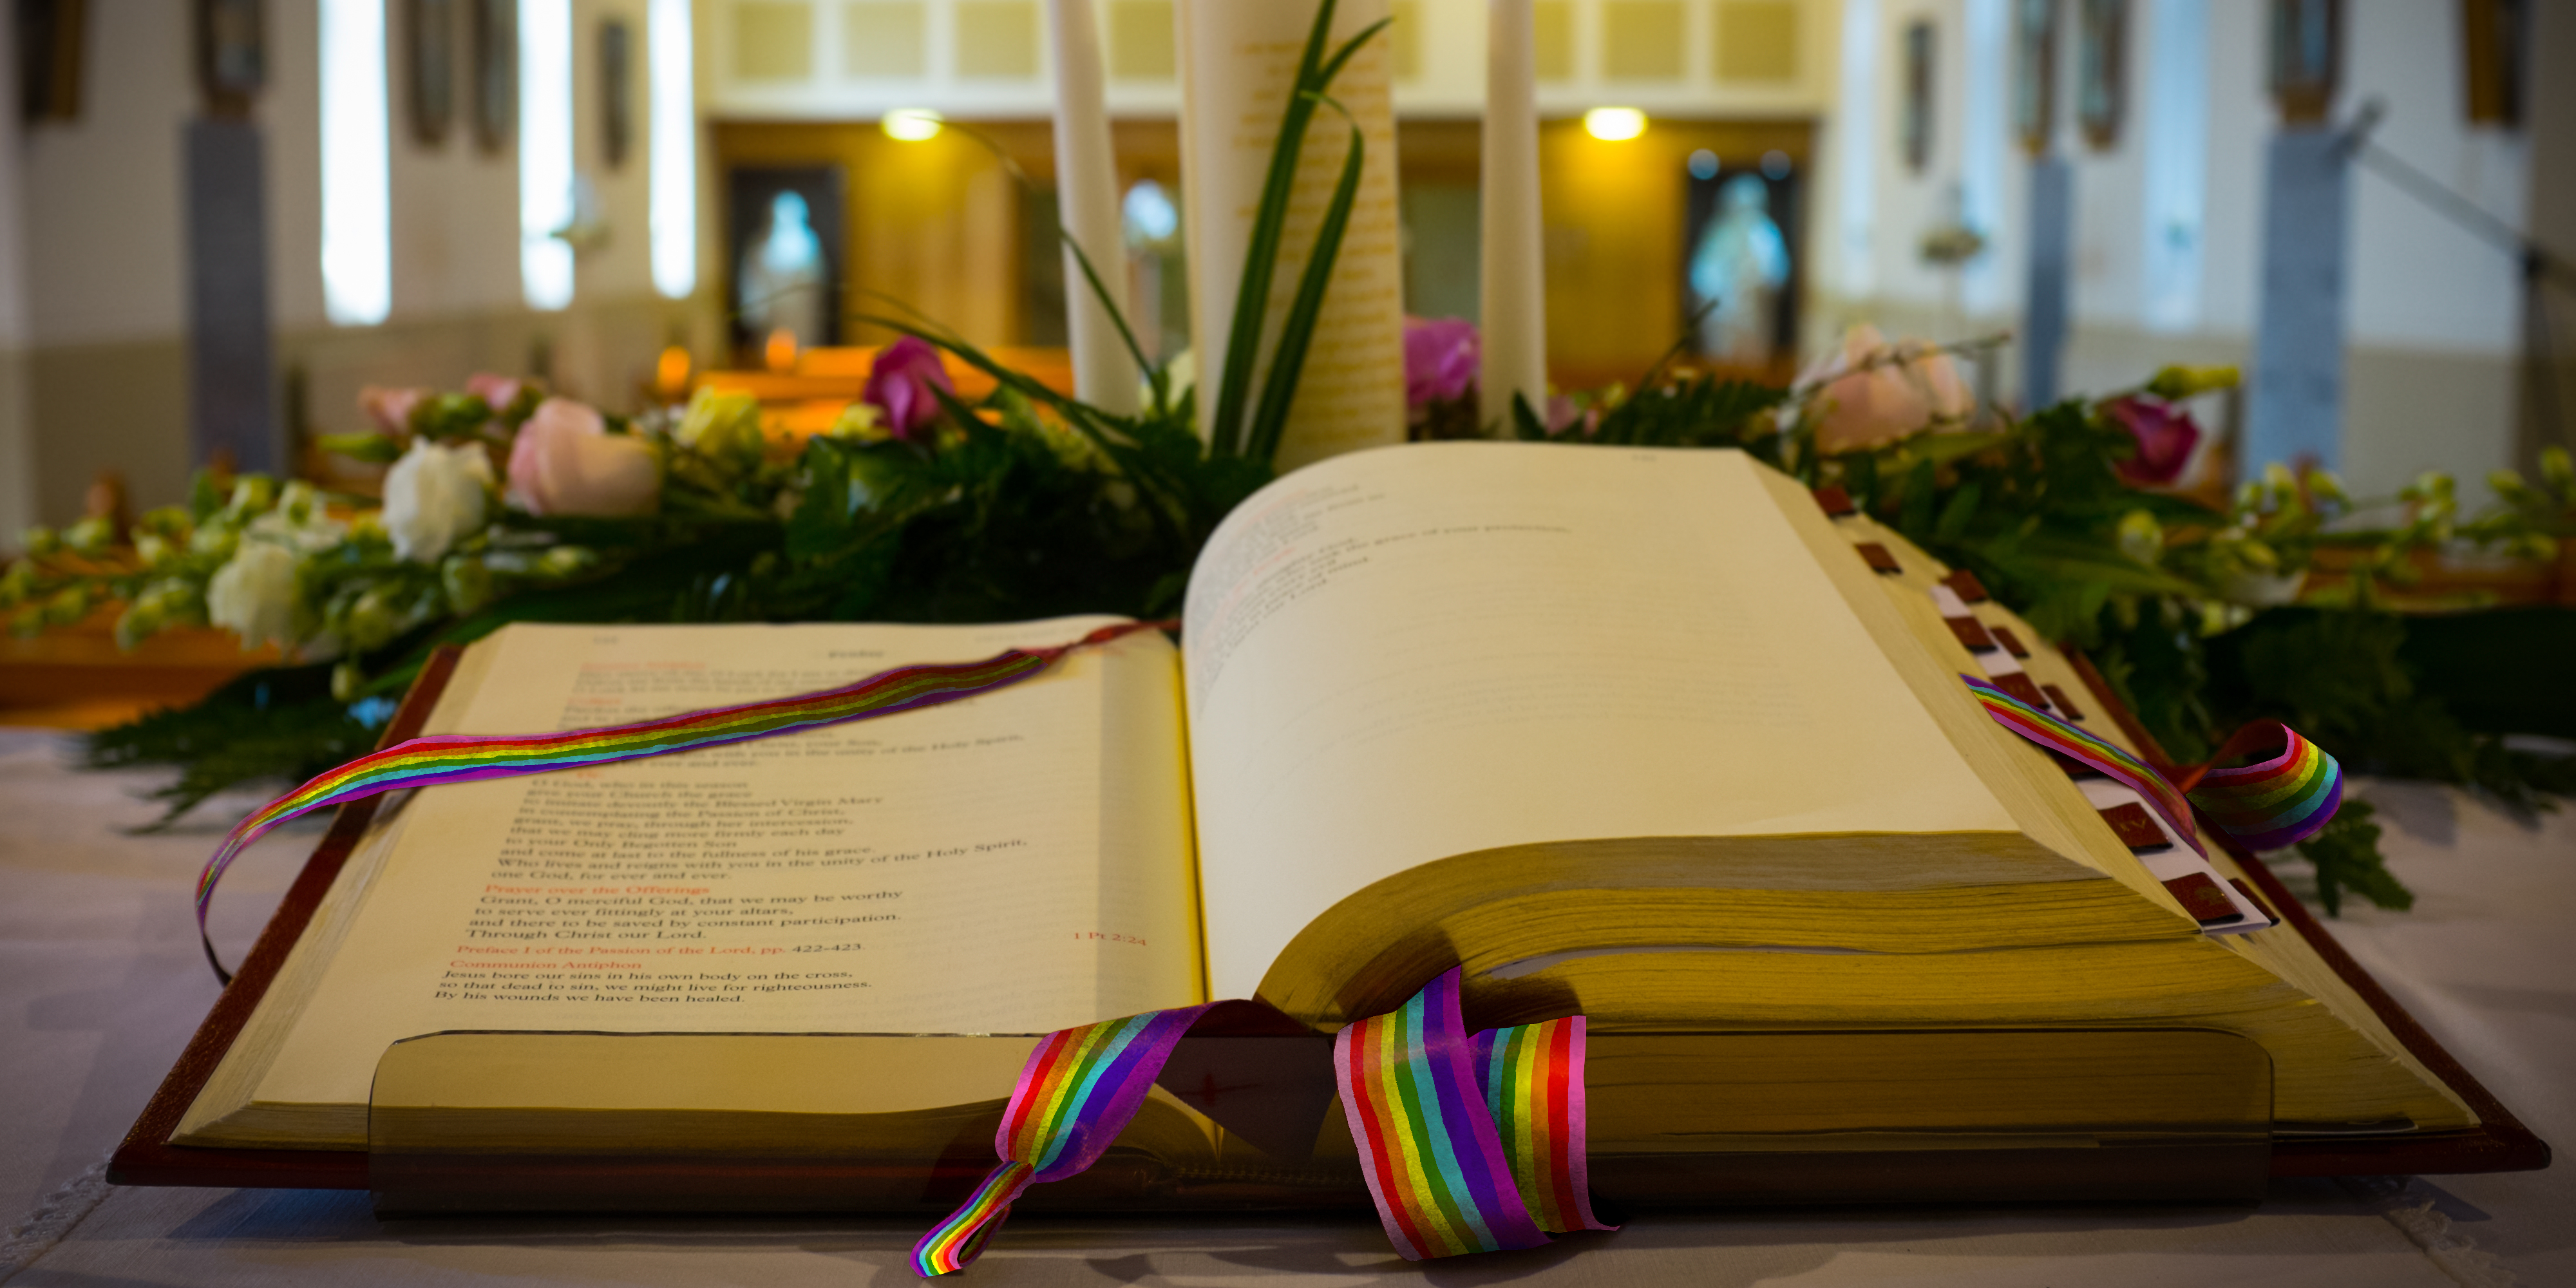 To Christians arguing 'no' on marriage equality: the Bible is not decisive